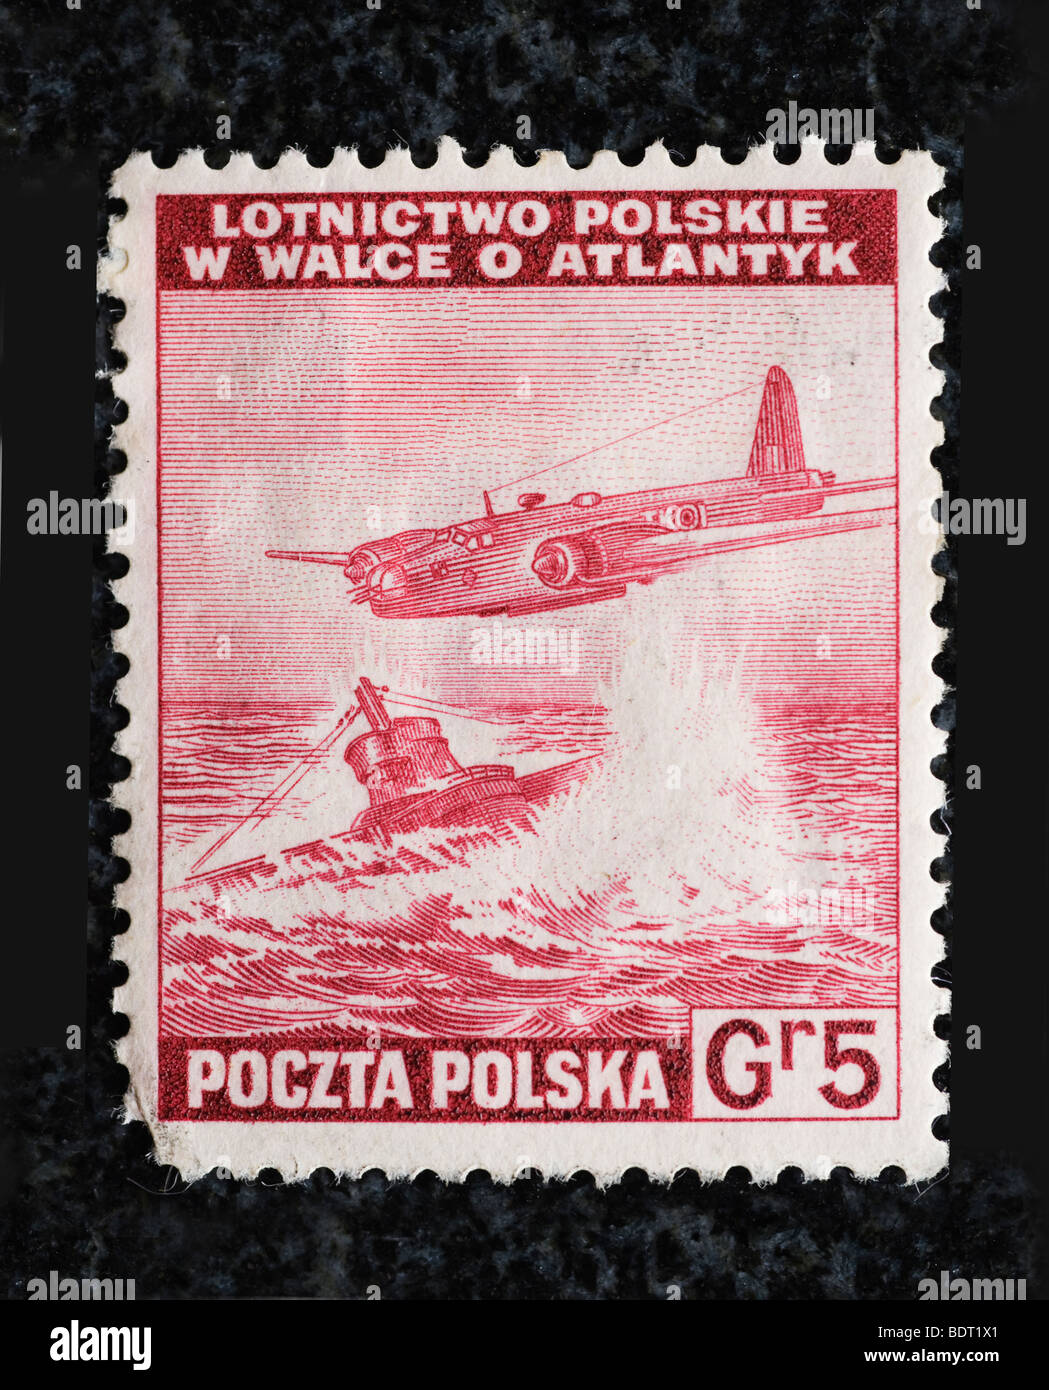 polish-air-force-postage-stamp-1940-BDT1